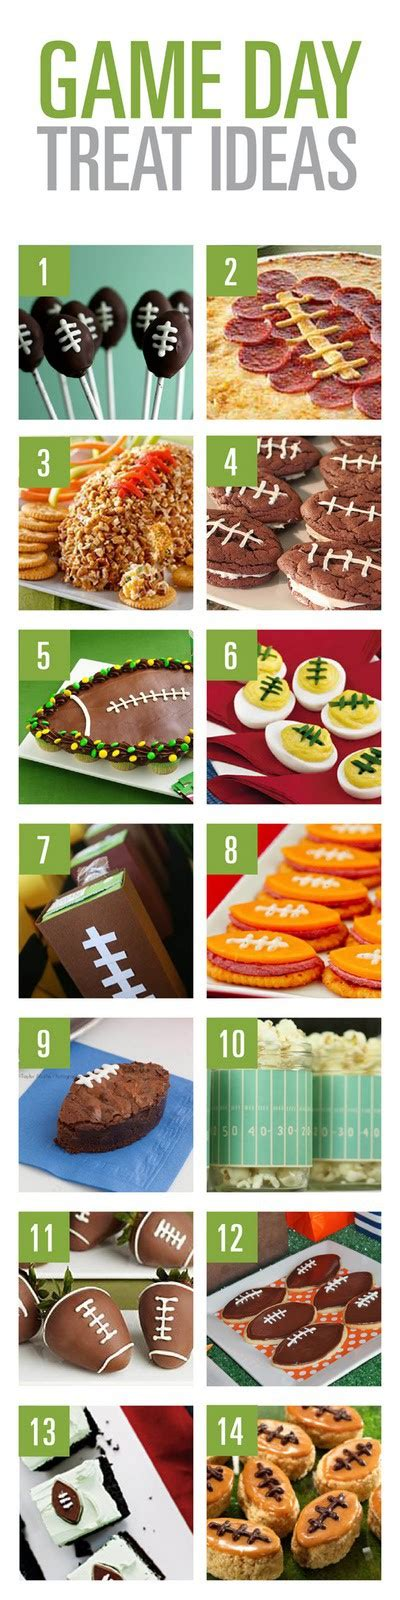 football food ideas football food for game day good ideas and tips